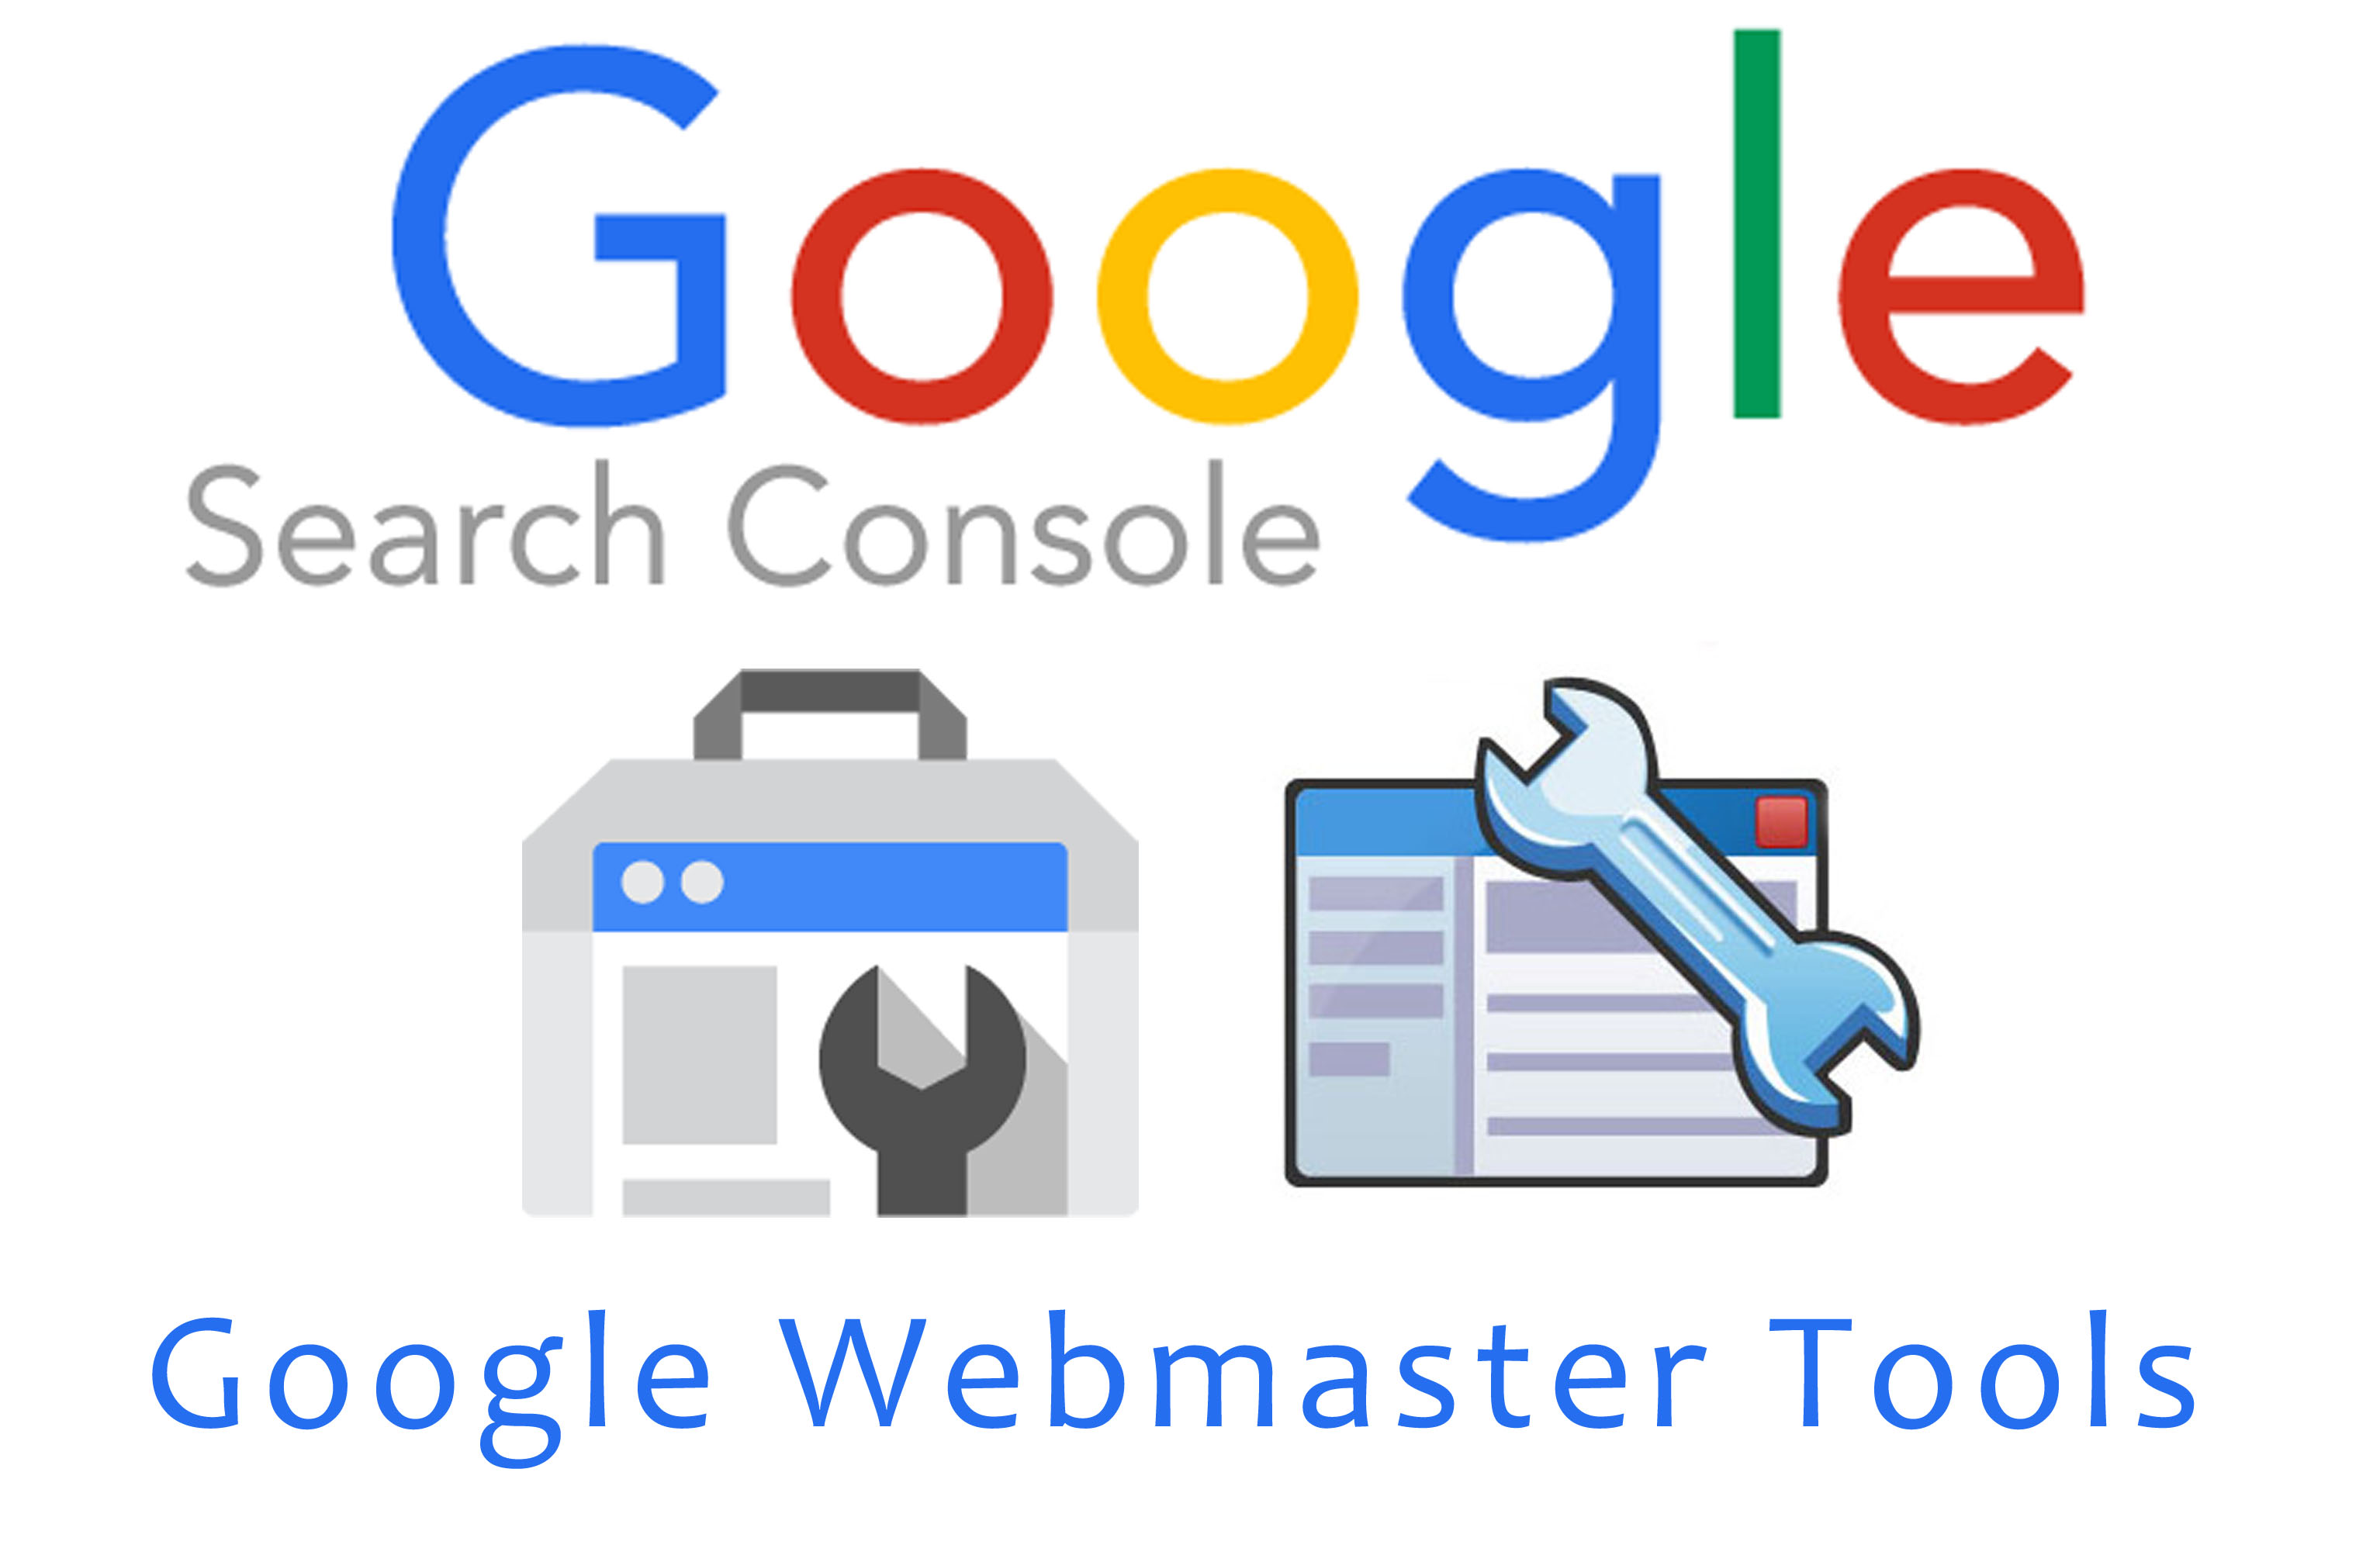 Fix Your Google Search Console Issues